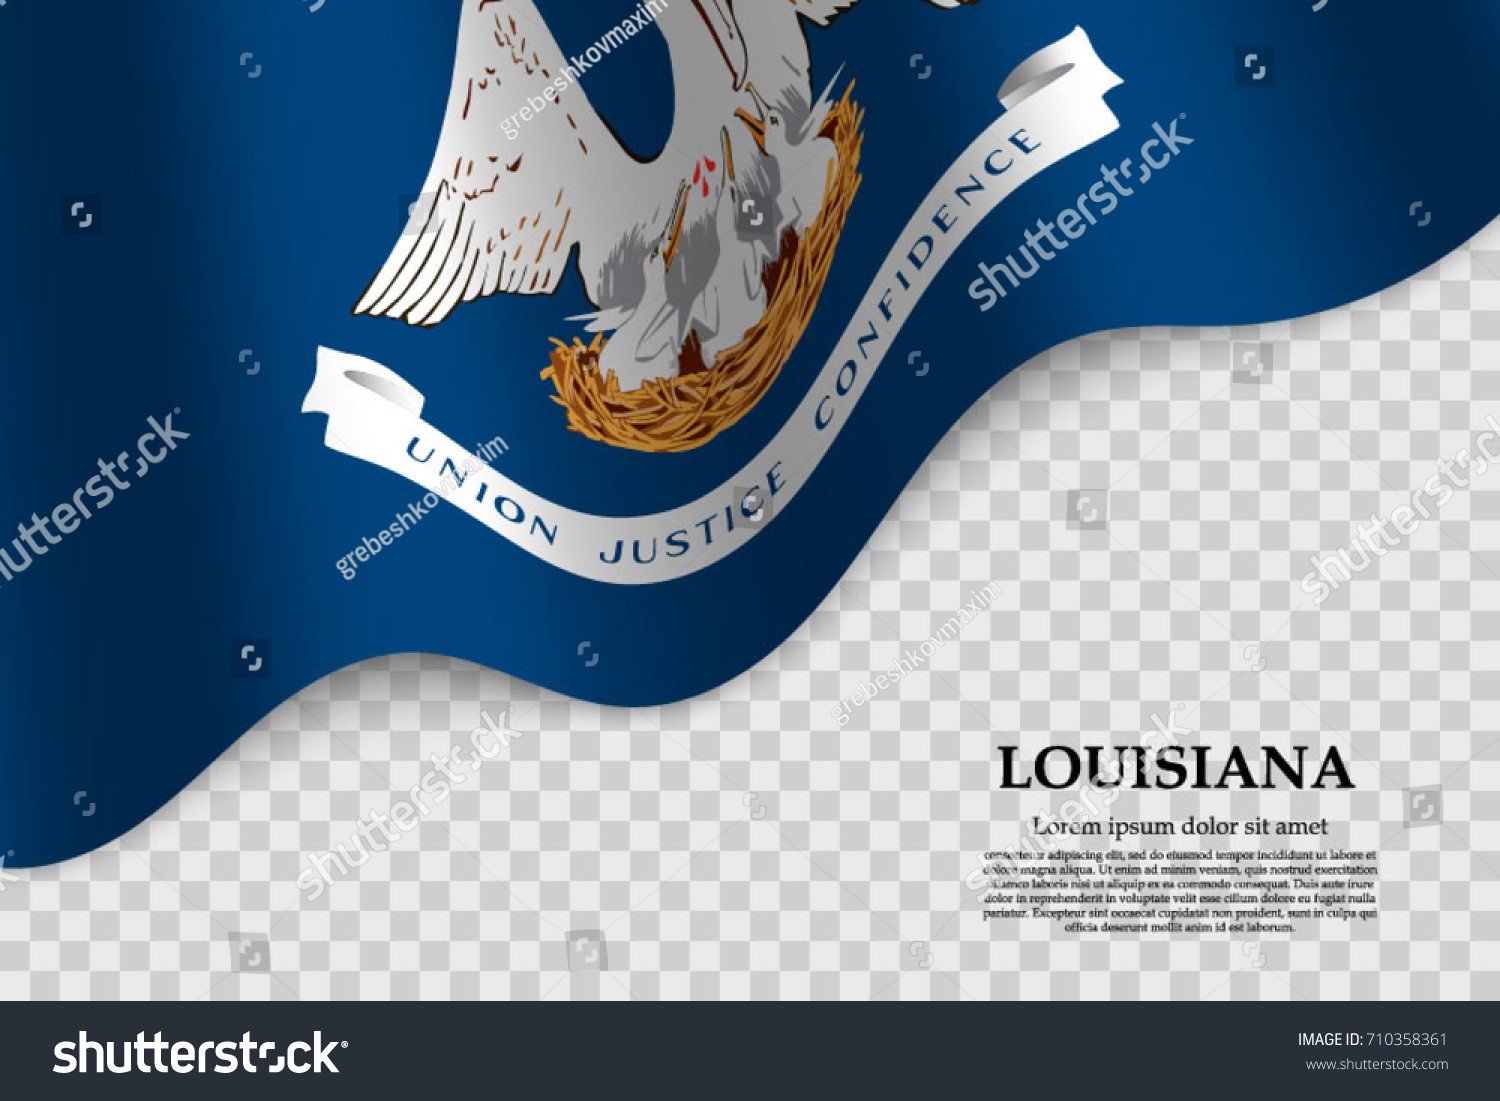 Waving flag louisiana state usa on stock vector 710358361 waving flag of louisiana is a state of usa on transparent background template for banner pronofoot35fo Gallery